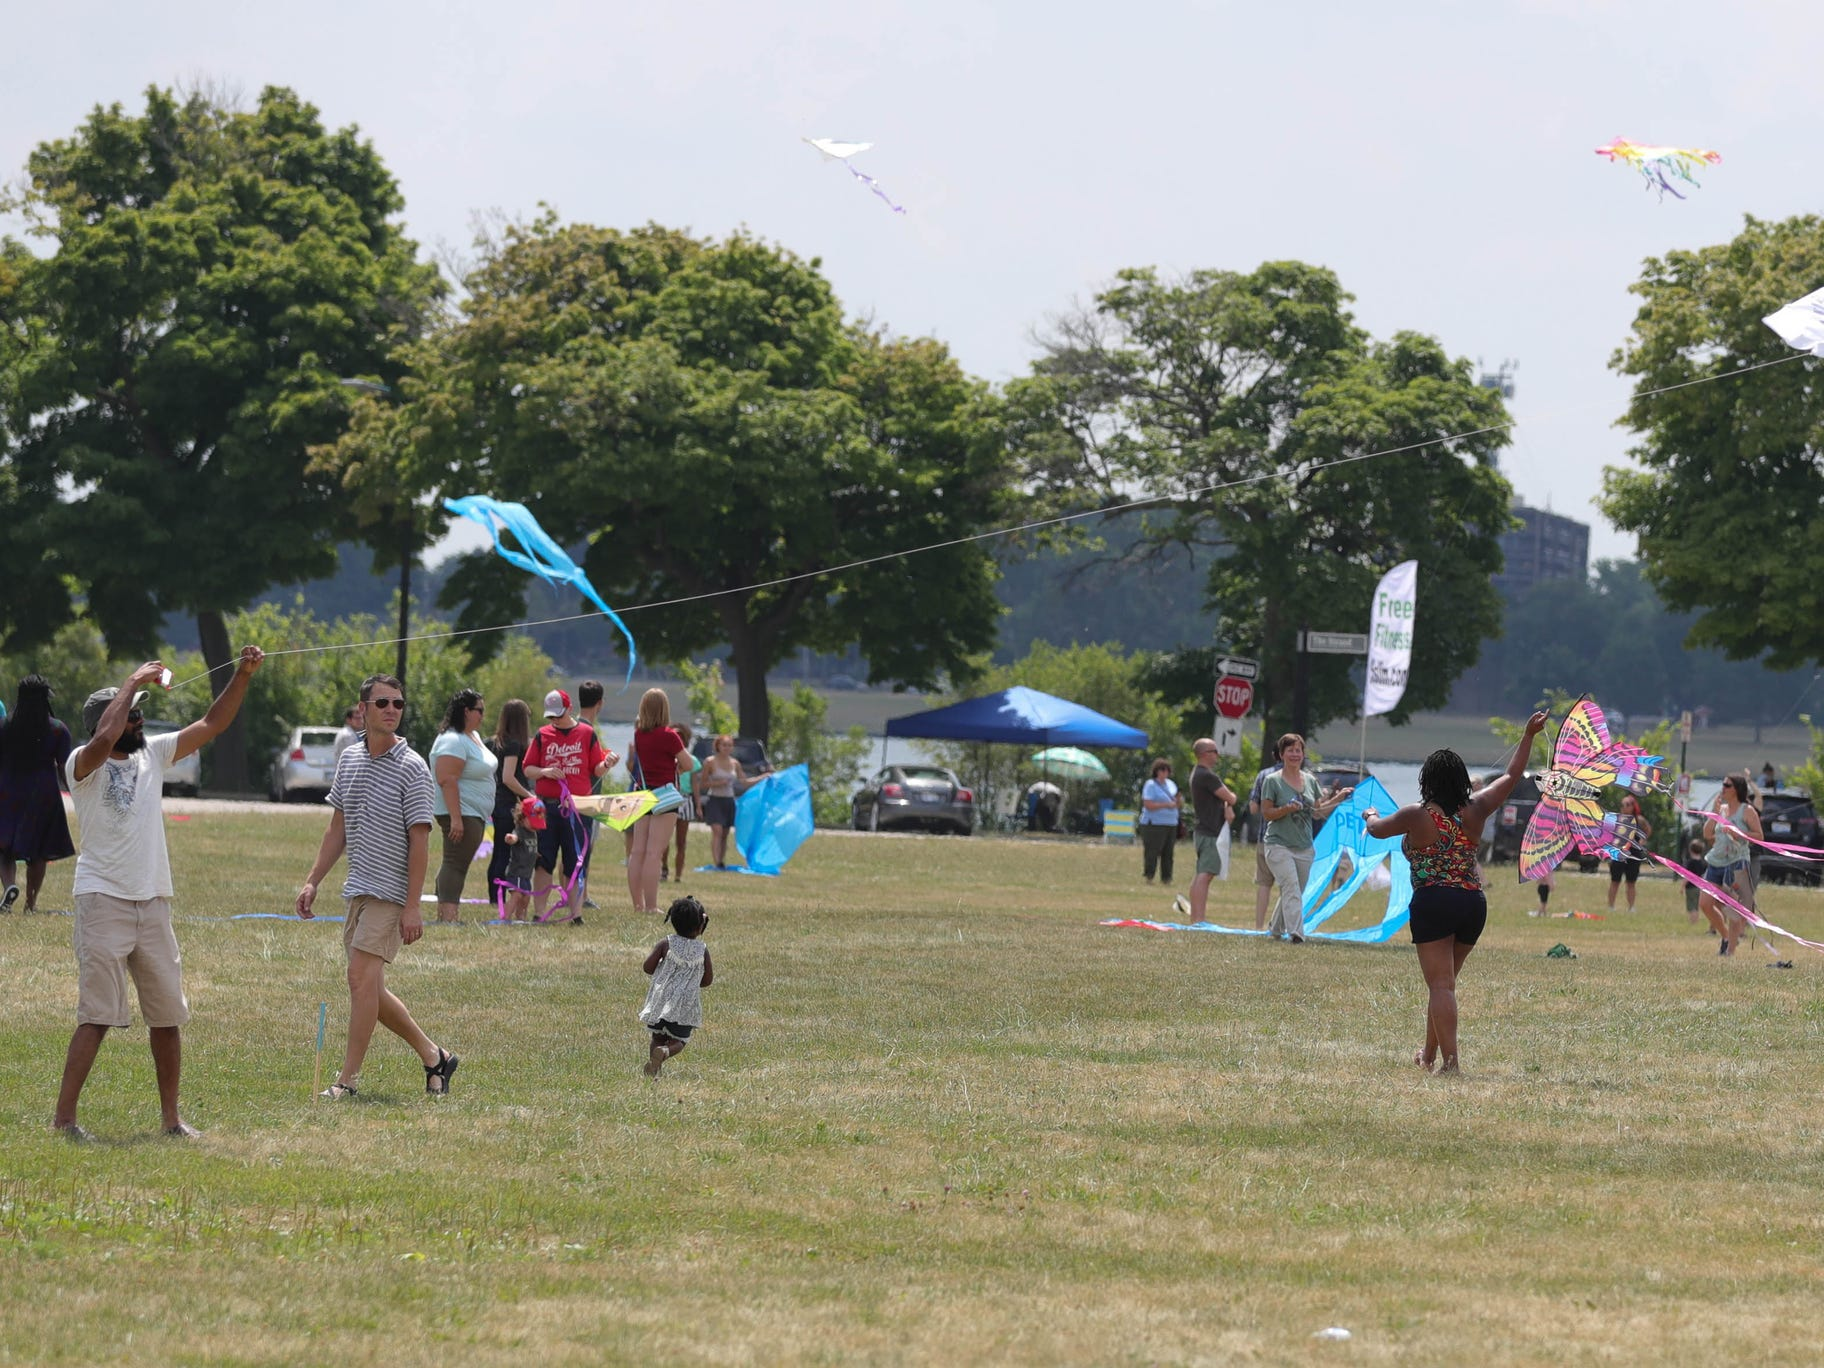 The Detroit Kite Festival was held on Belle Isle Sunday, July 15, 2018. Kite enthusiasts from all over Metro Detroit enjoyed the festivities.